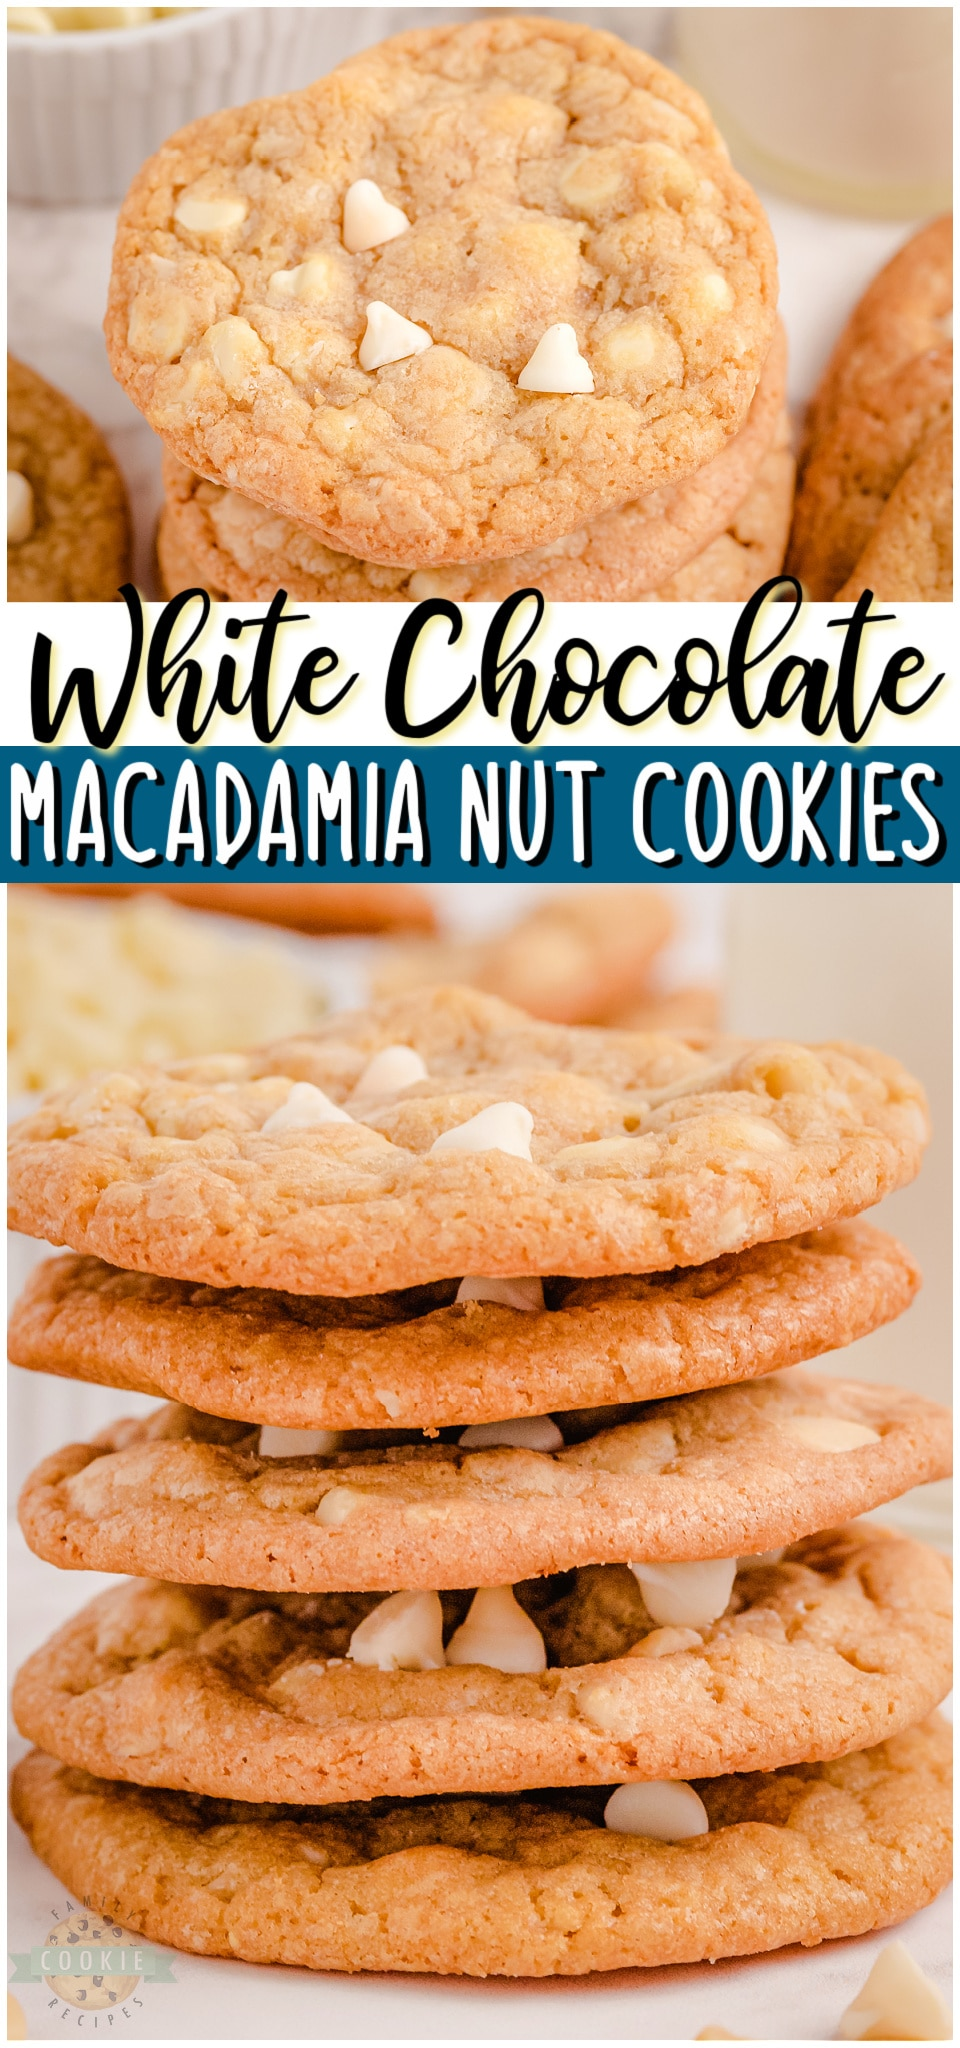 White chocolate chip cookies with macadamia nuts are a tasty treat that everyone can enjoy. With the soft and chewy cookies, buttery nuts and melt in your mouth chocolate chips, each bite is amazing! #cookies #baking #whitechocolate #macadamianut #dessert #easyrecipe from FAMILY COOKIE RECIPES via @buttergirls